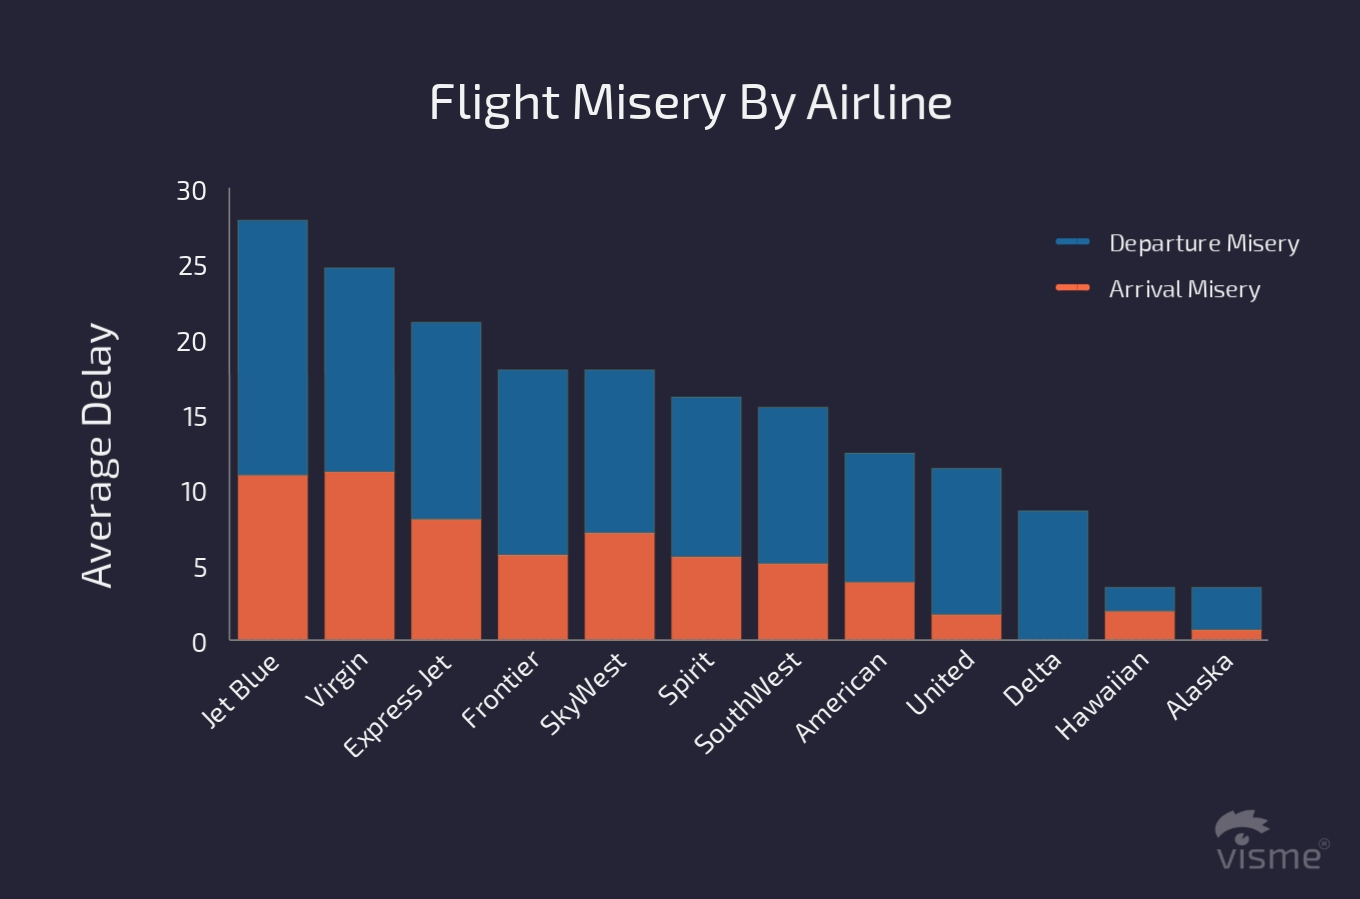 17 Charts on the State of the U.S. Airline Industry in 2017 flight misery by airline flight on time performance